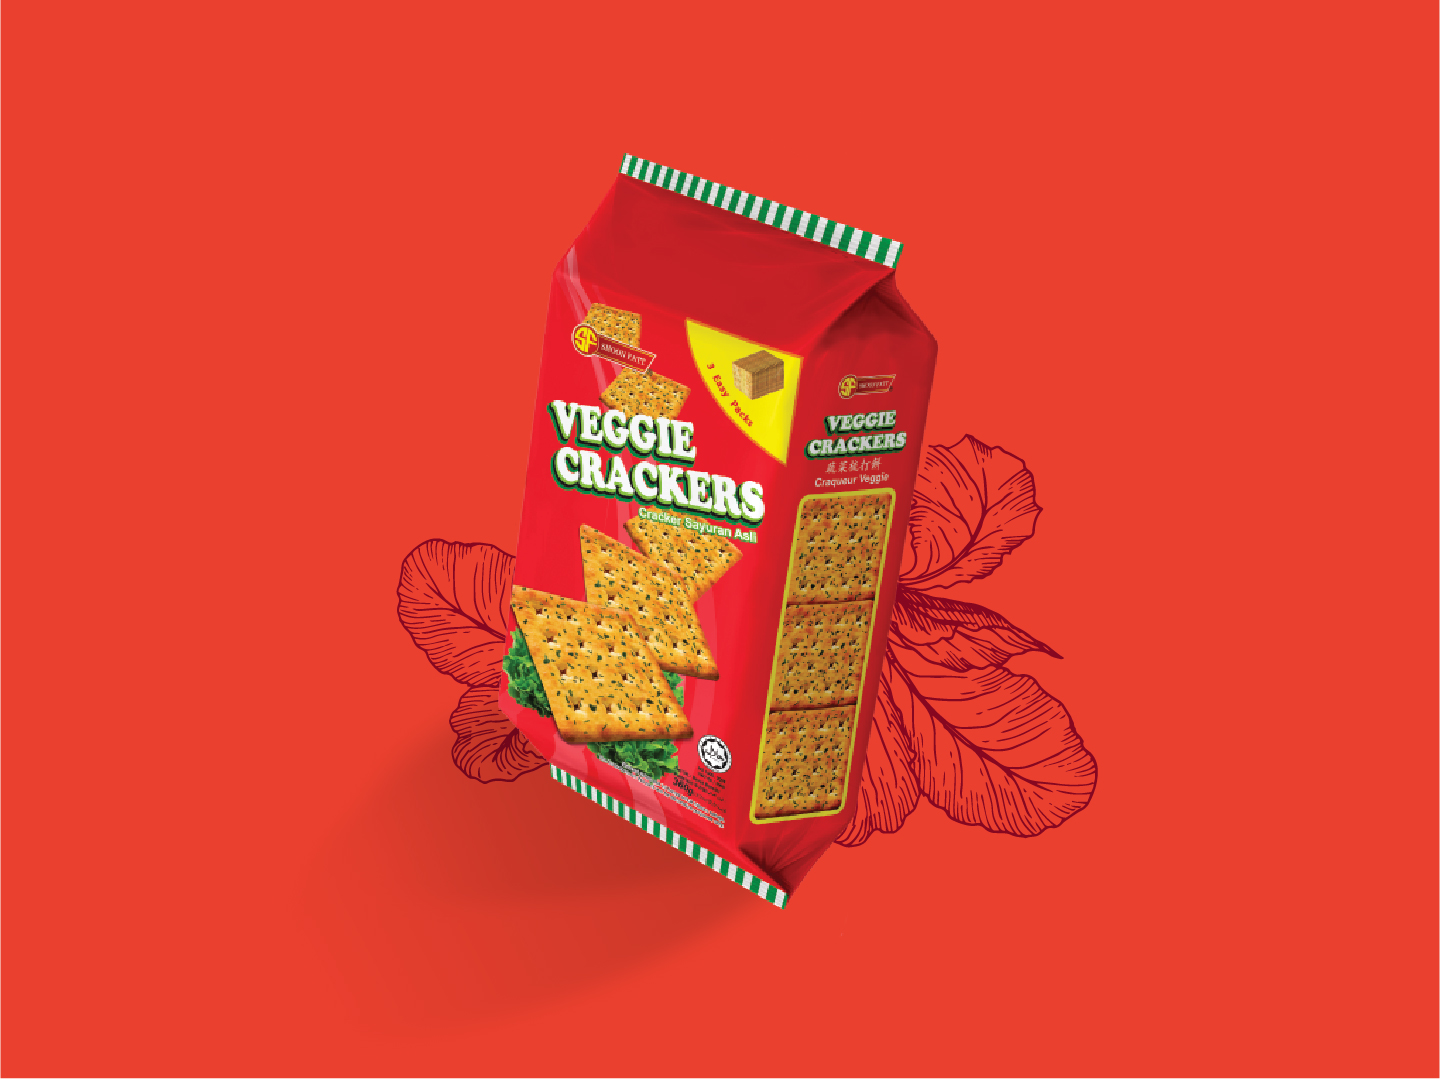 Shoon Fatt Veggie Crackers